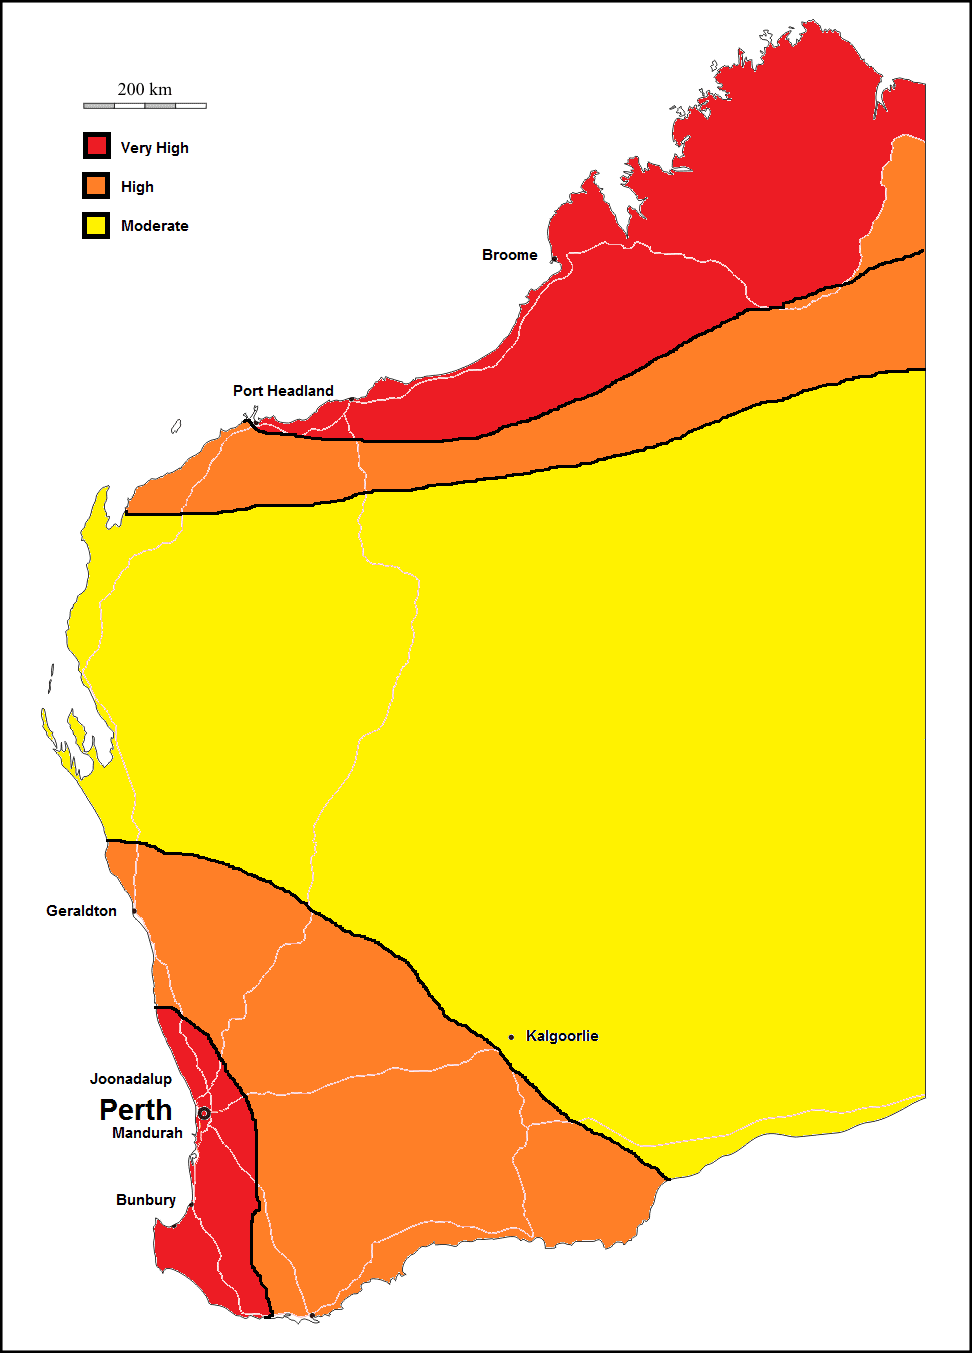 termite high risk area map of western australia